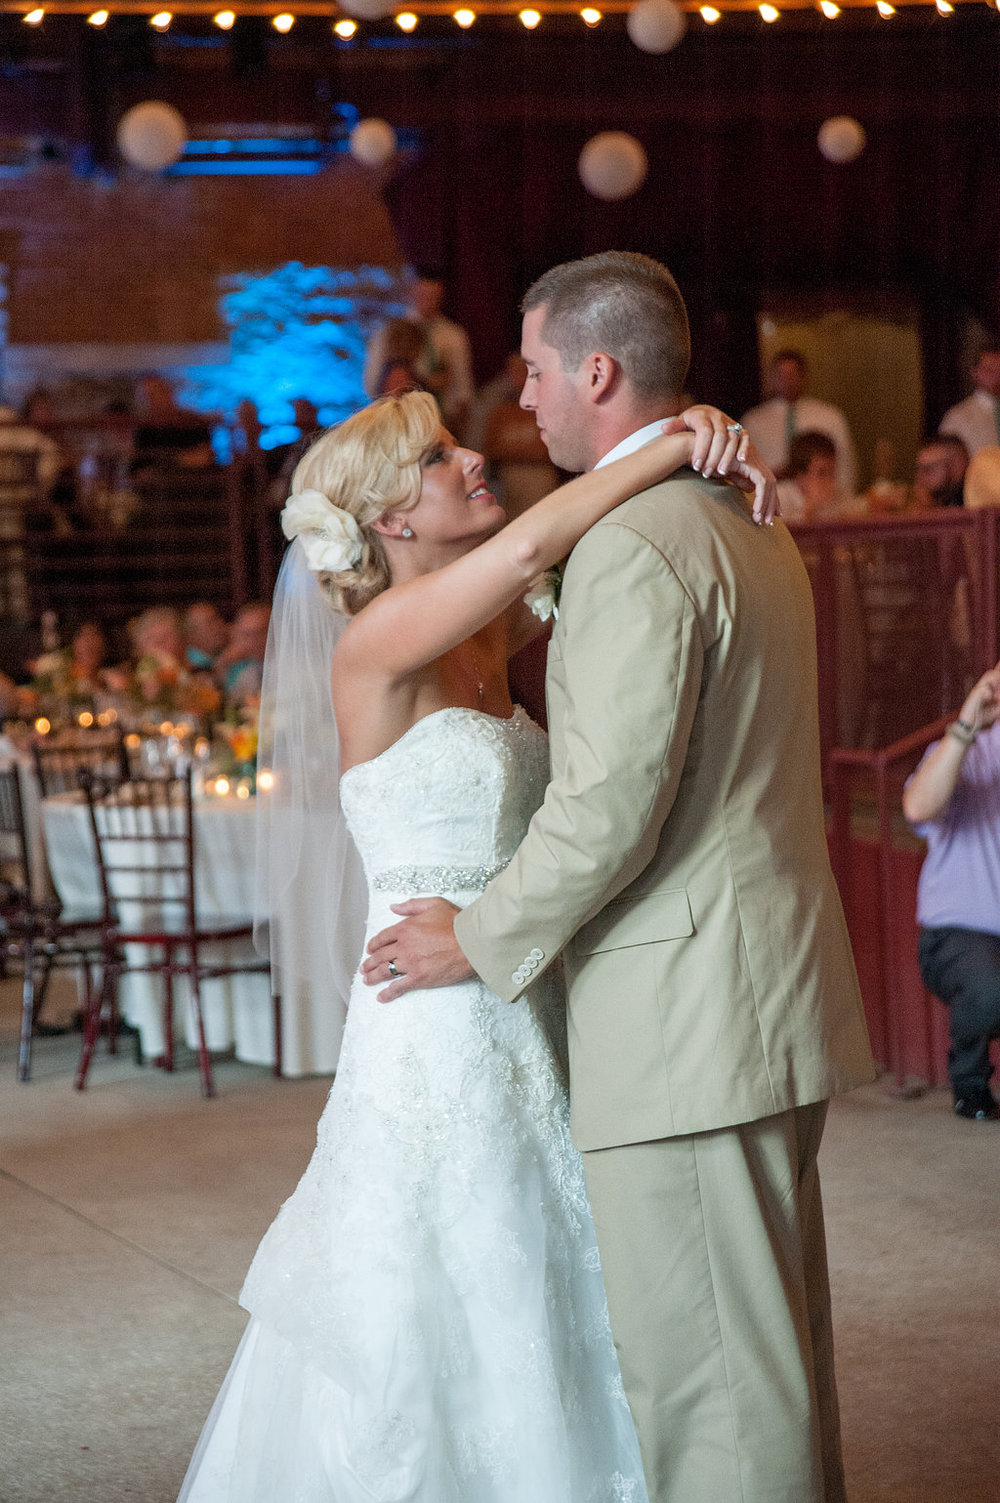 06.firstdance|parentdances-017.jpg